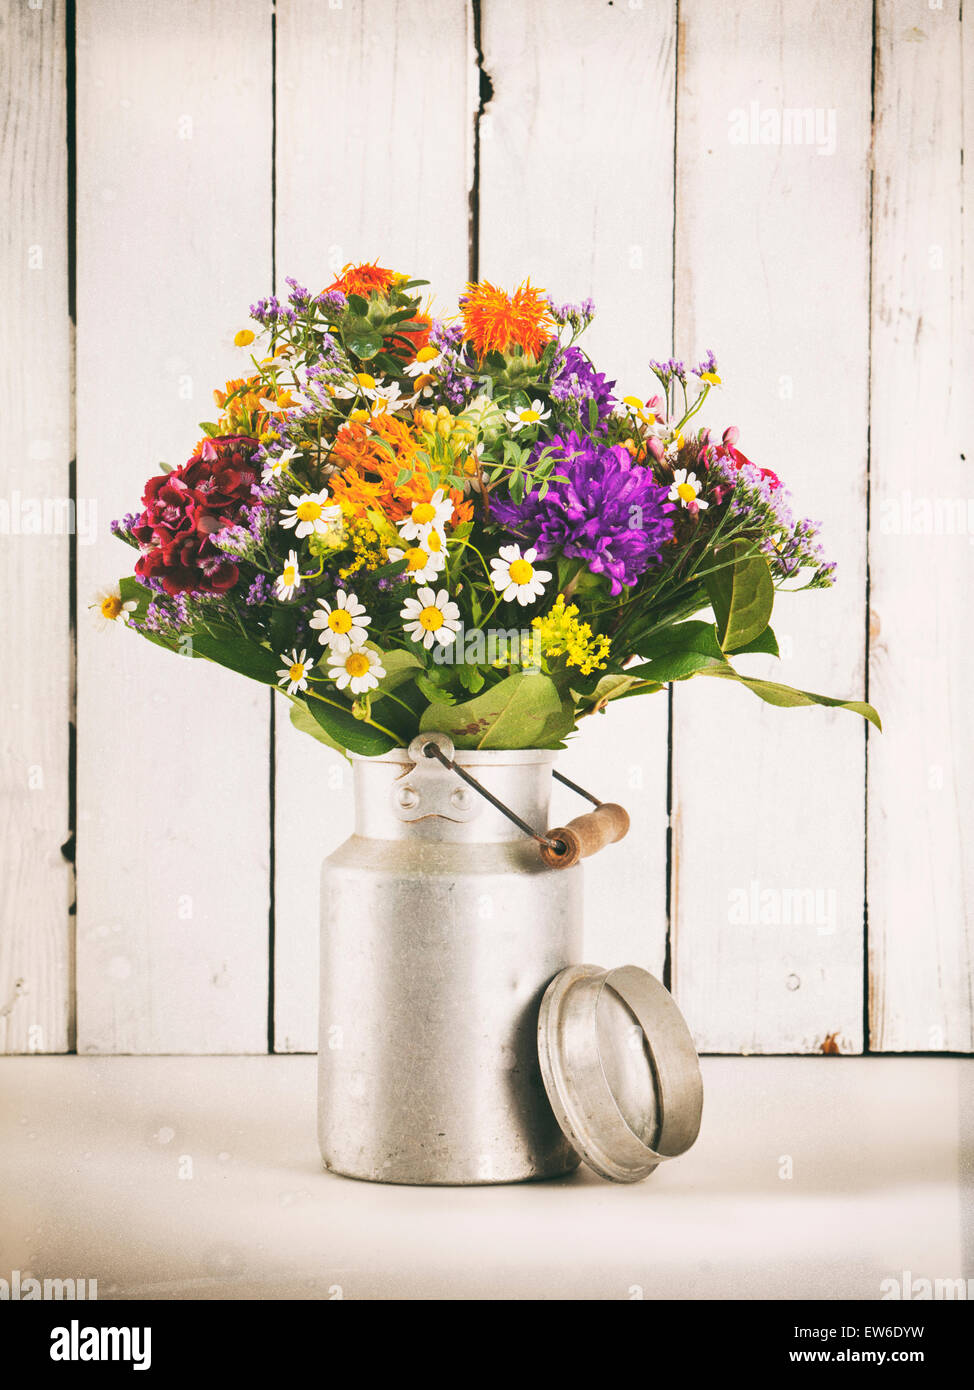 Summer flower bouquet in old milk canister in front of rustic wooden wall, vintage processing - Stock Image